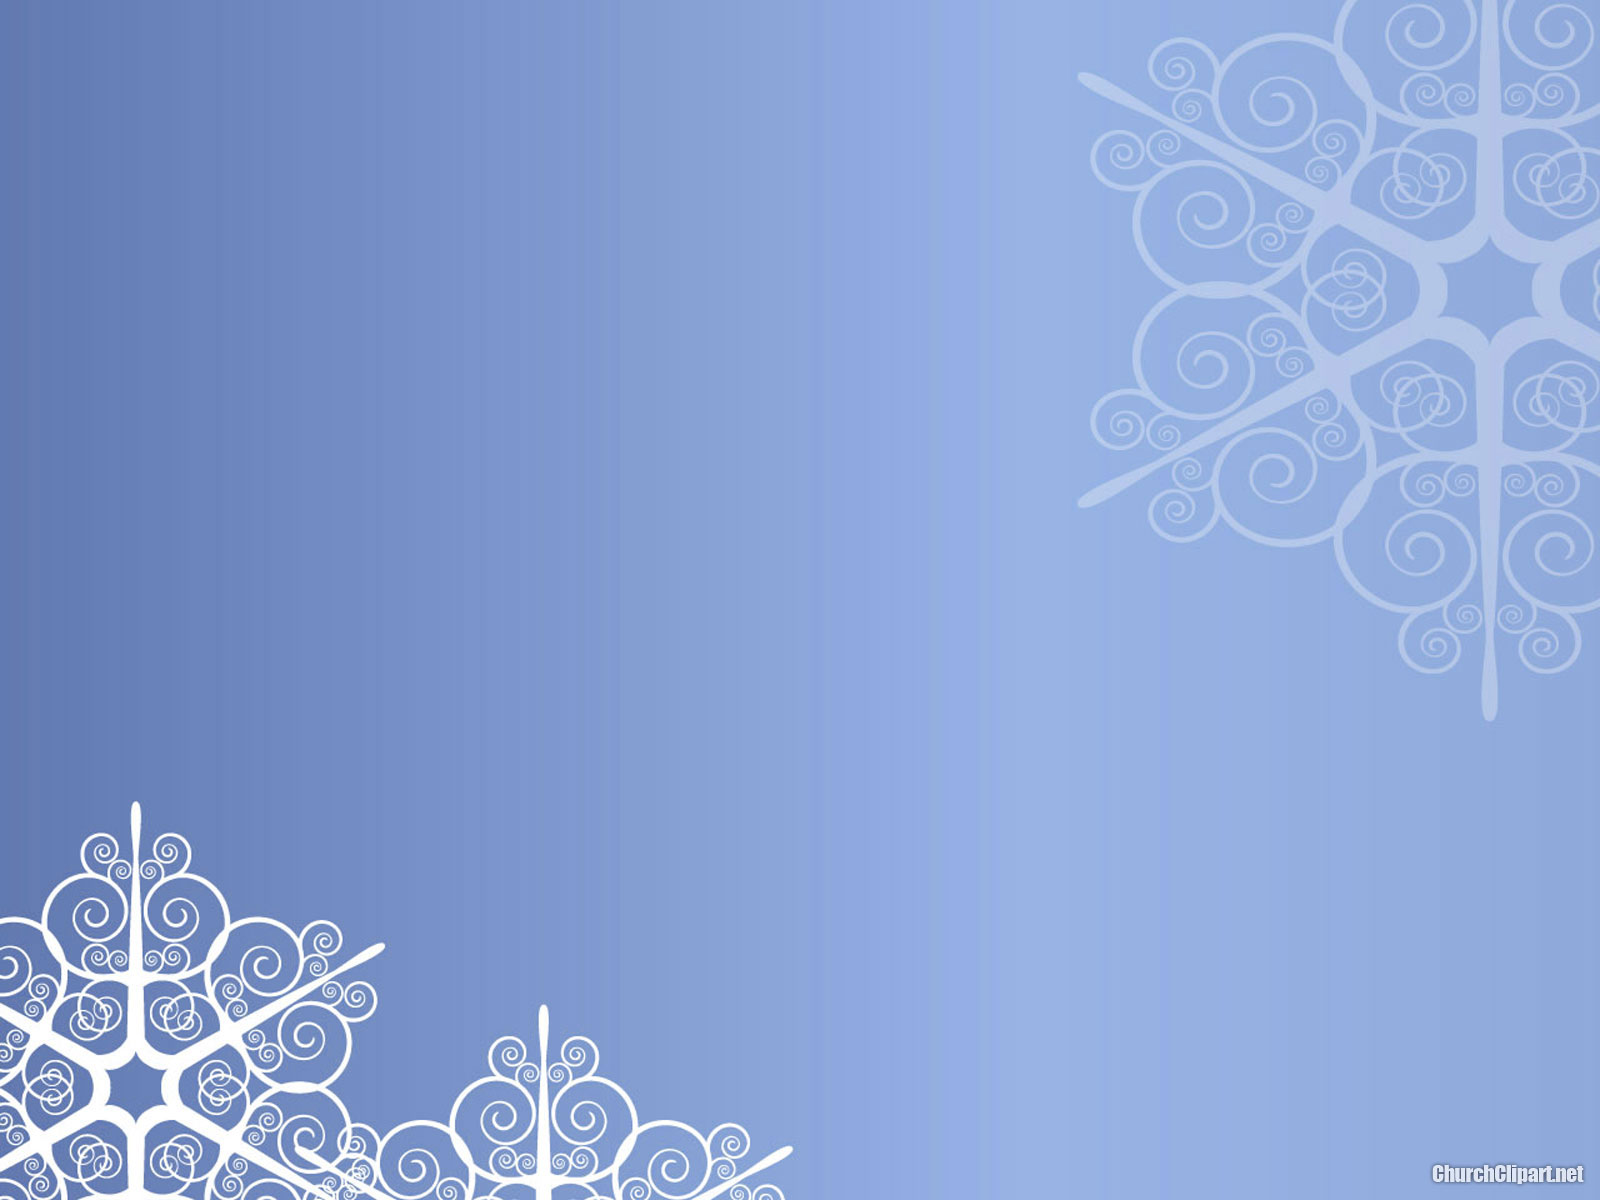 For powerpoint incep imagine. Blizzard clipart snow background